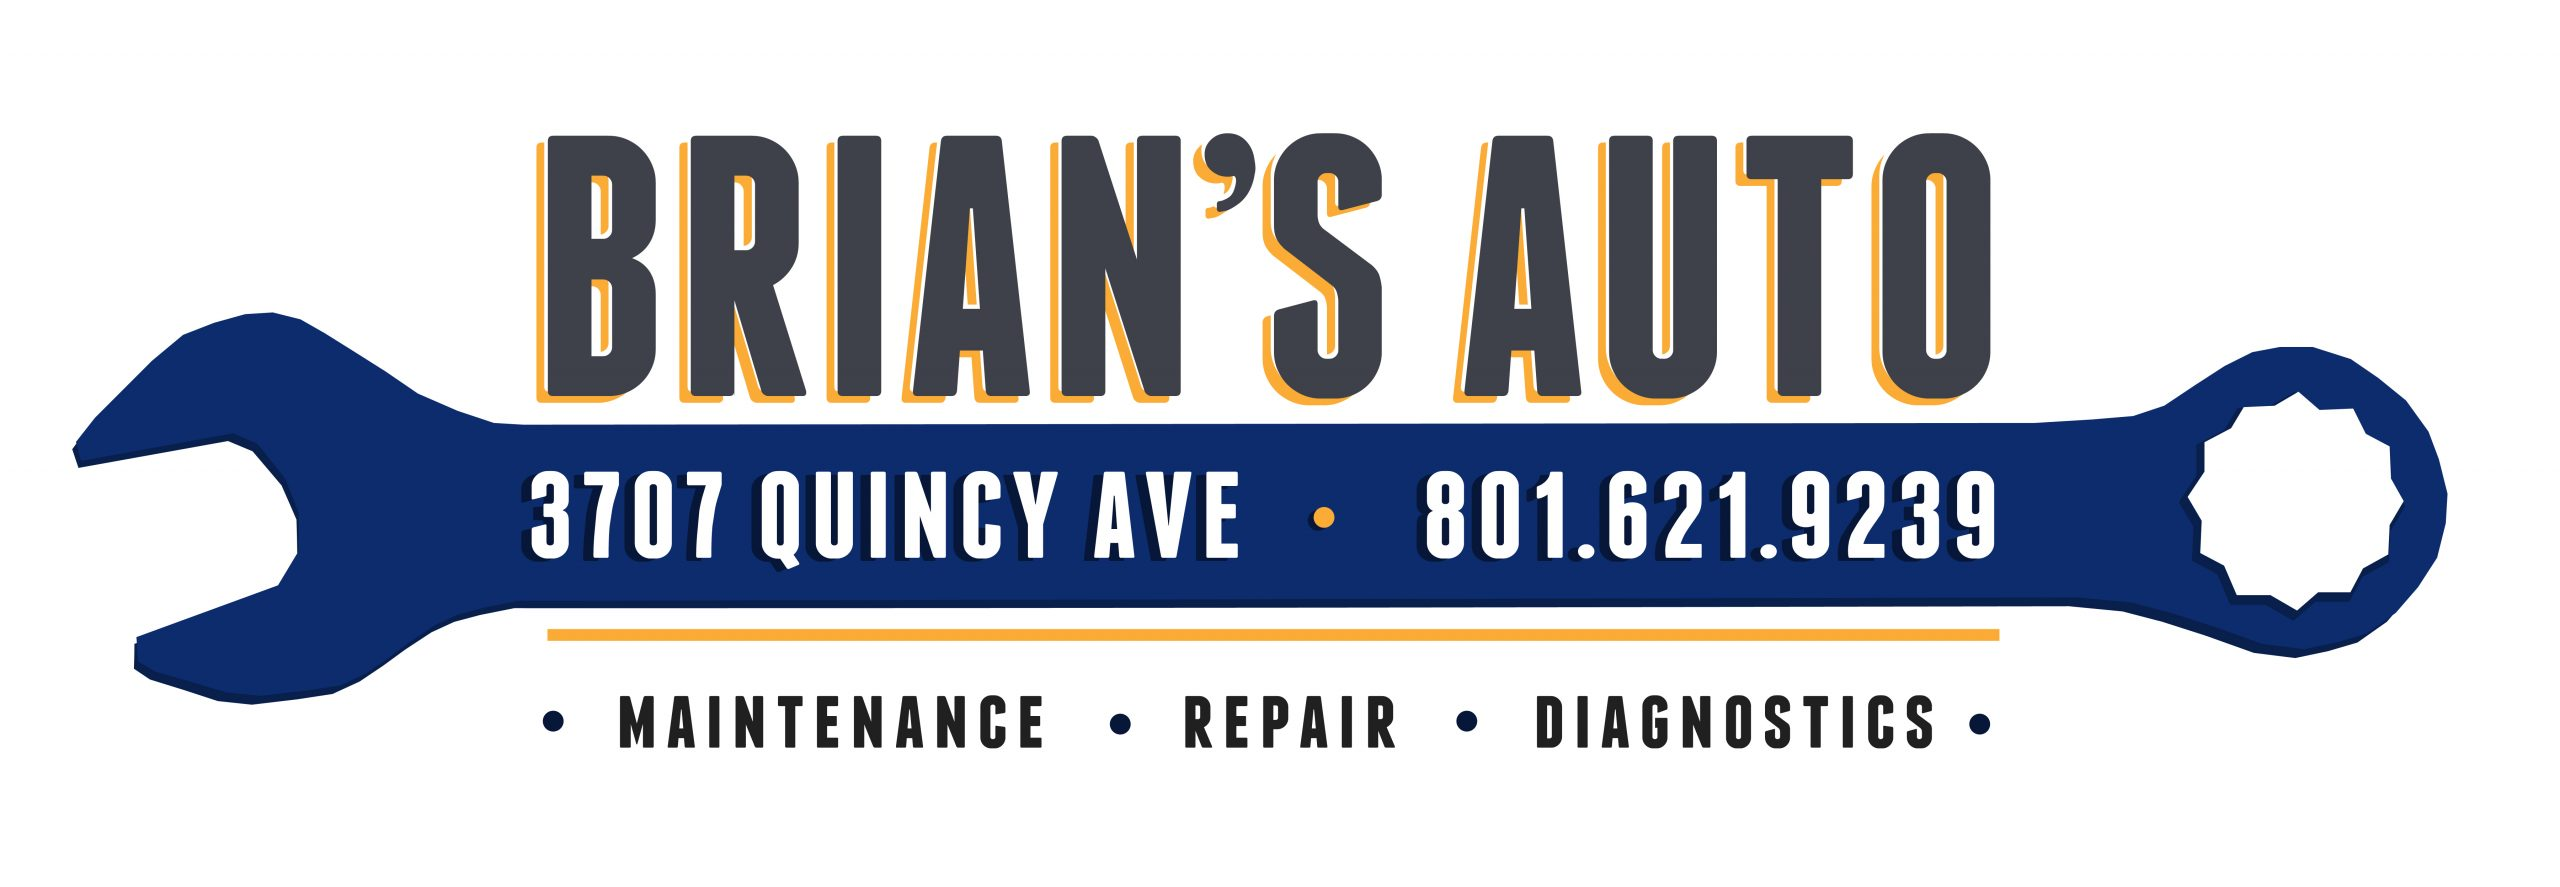 brians auto_shop sign 2